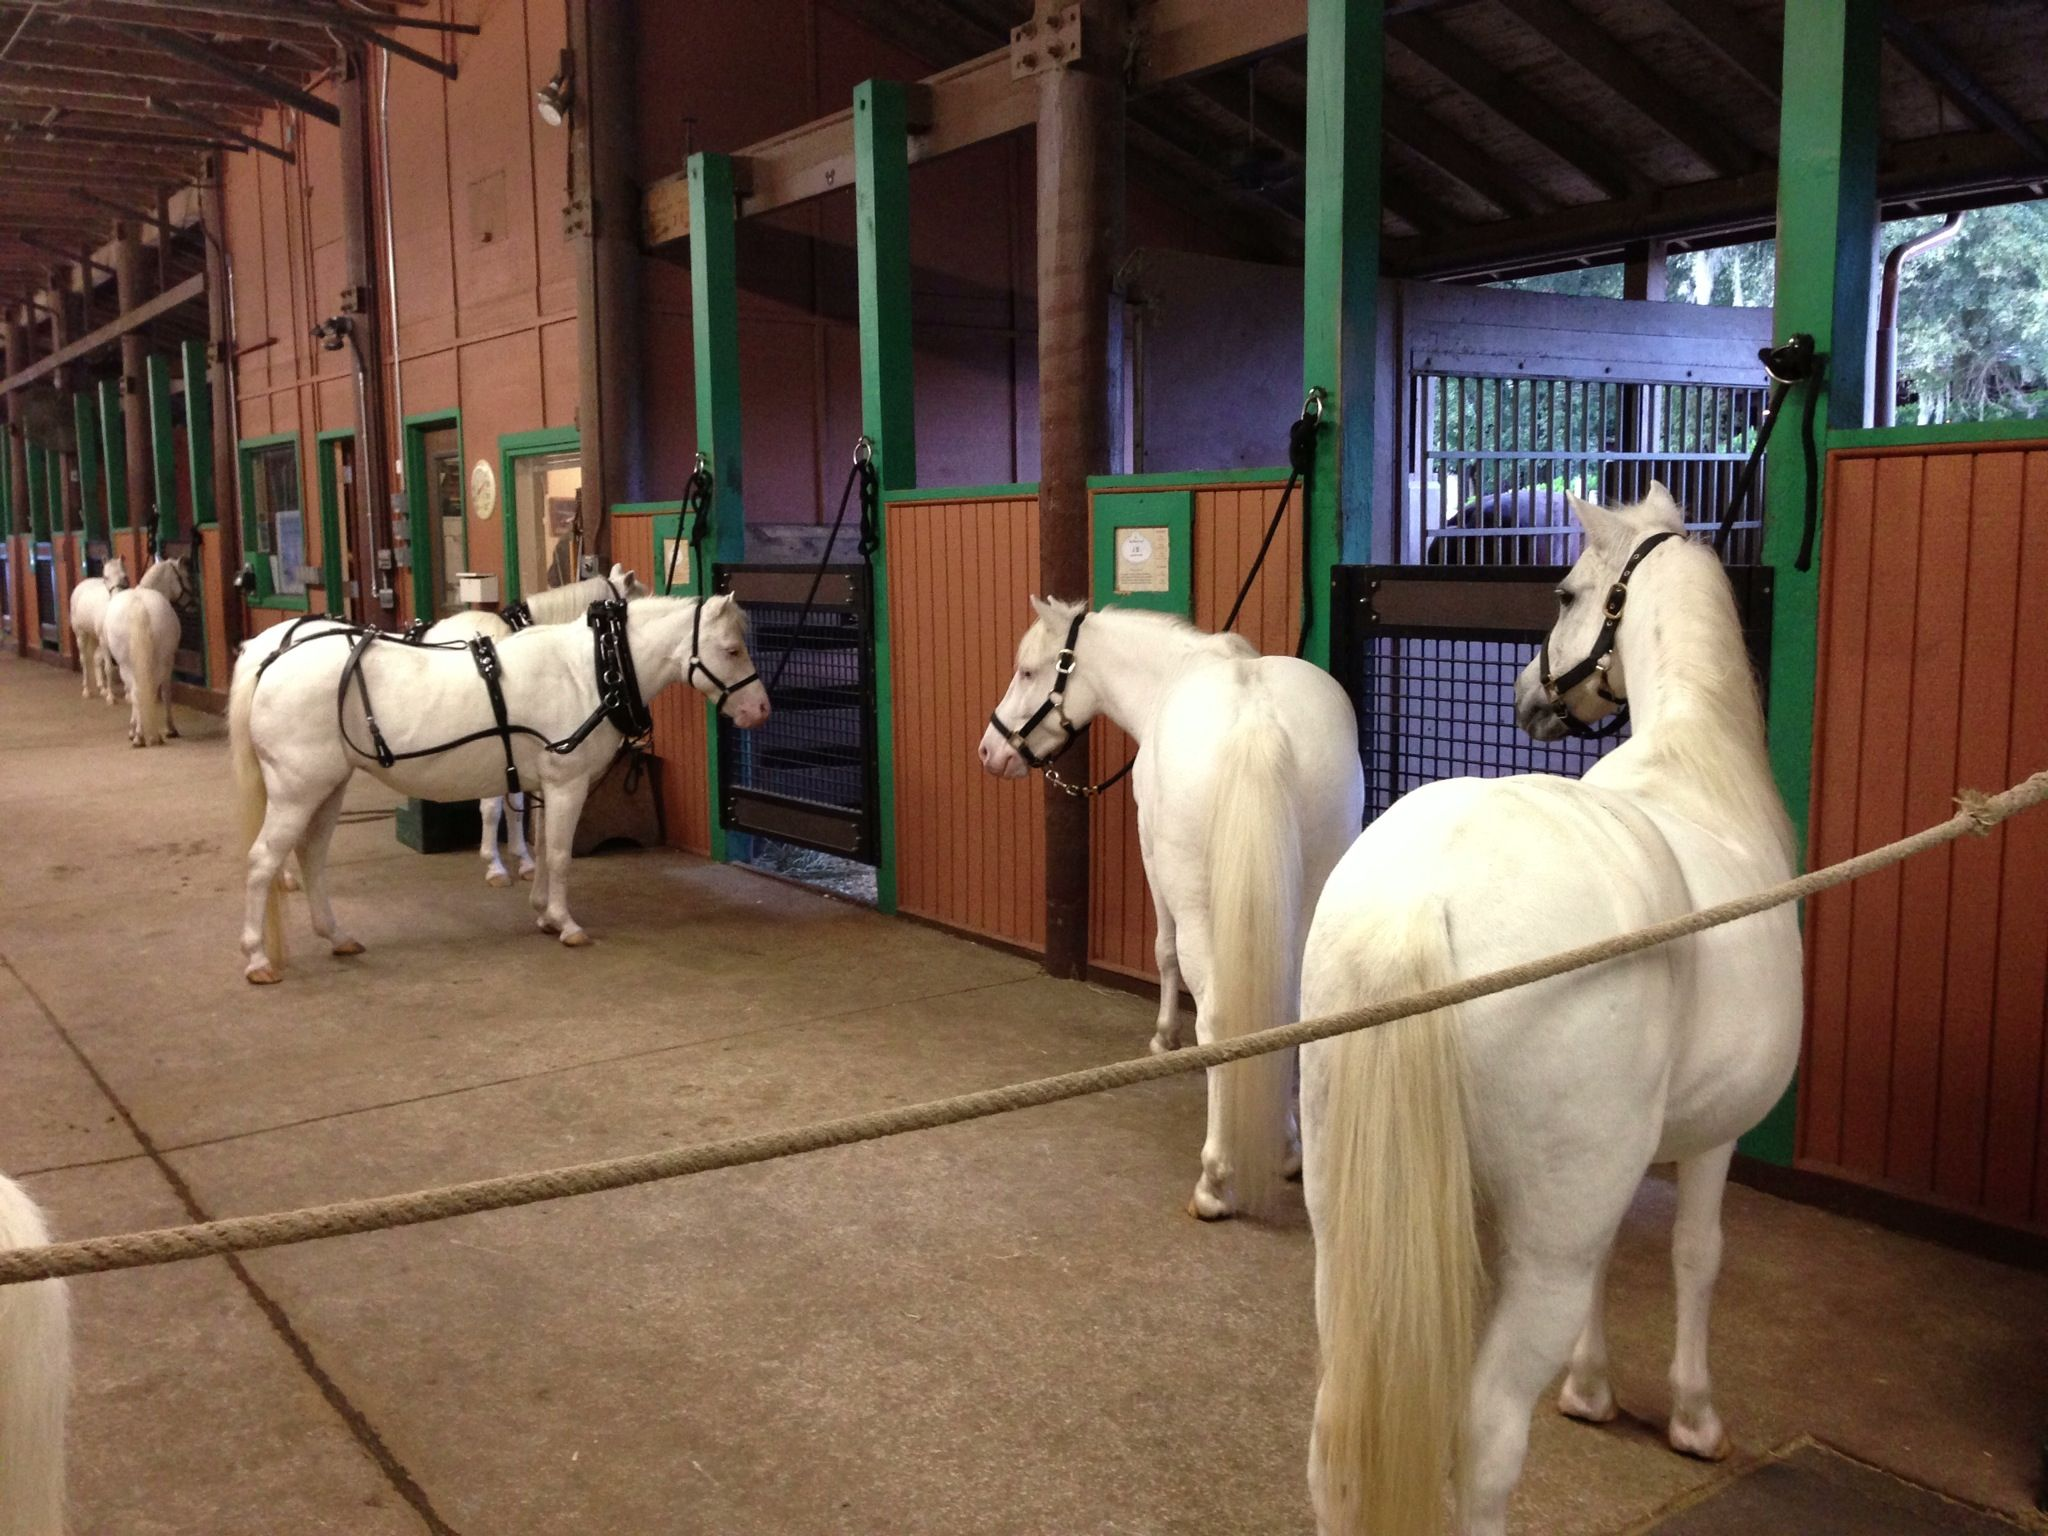 Cinderella Carriage ponies await their groom at the Tri Circle D ...